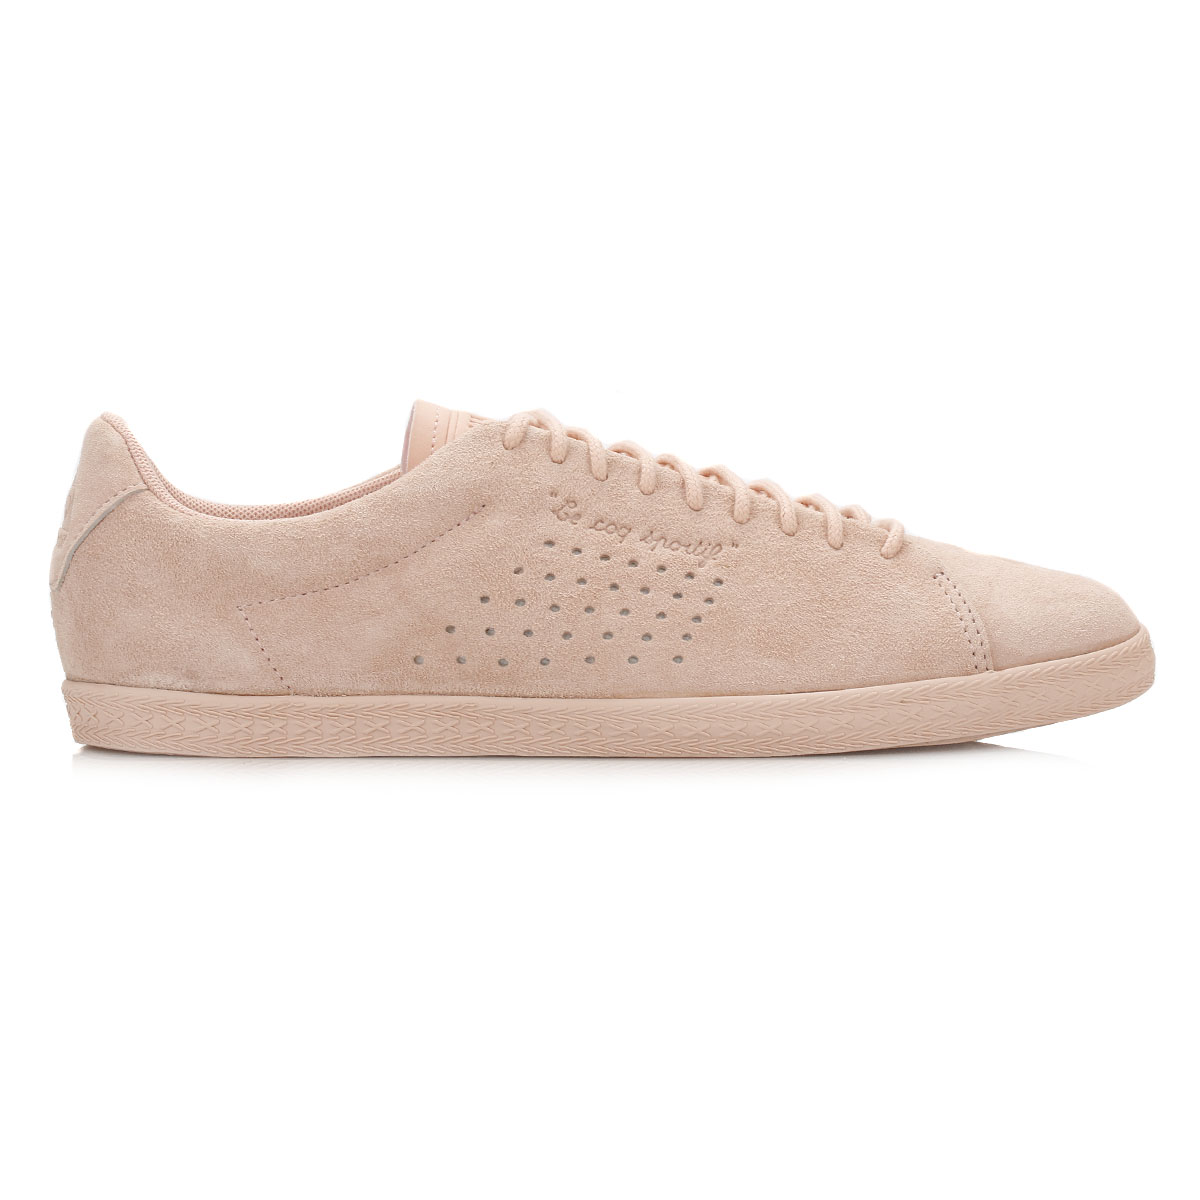 new style 2ecb8 9b0fc Le-Coq-Sportif-Womens-Charline-Trainers-White-or-